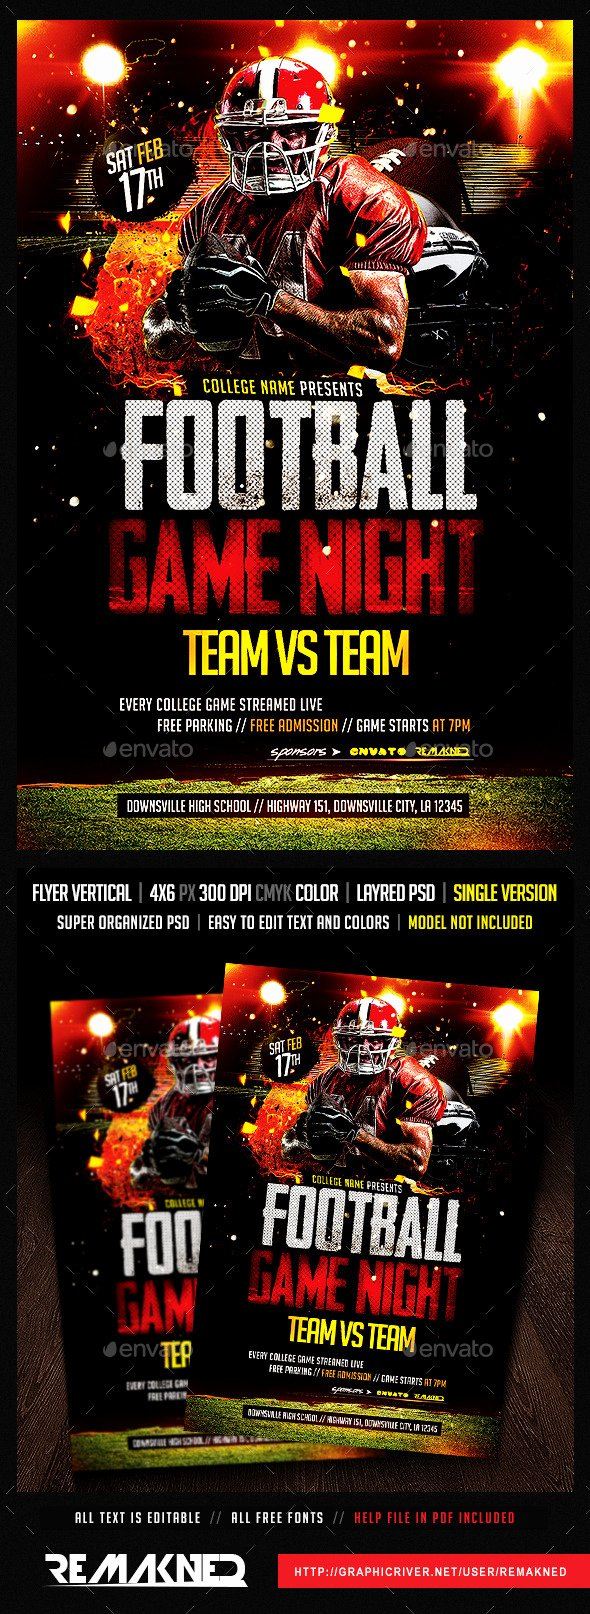 Game Night Flyer Template New Football Game Night